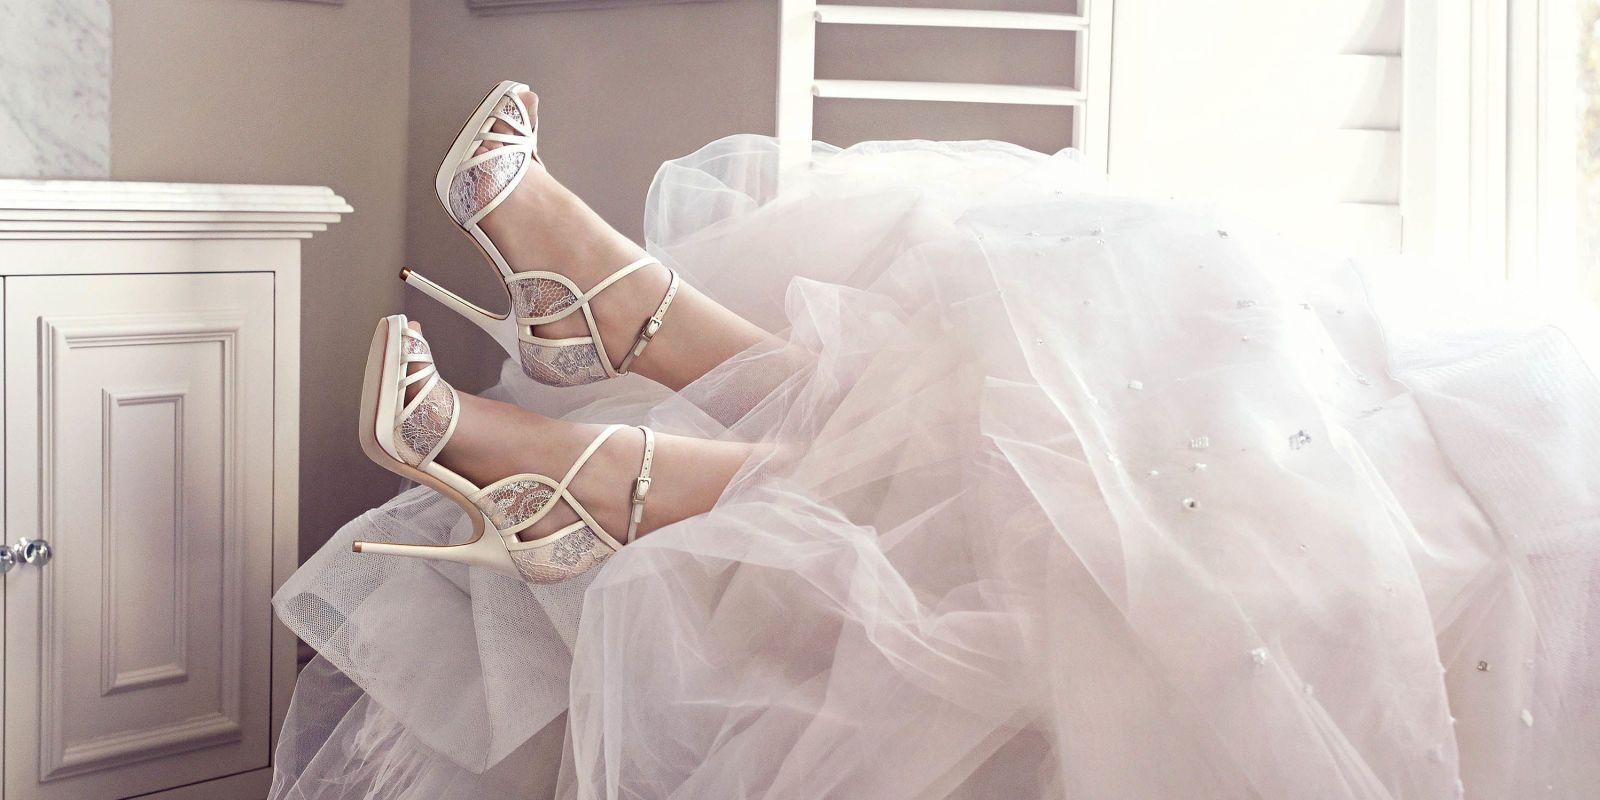 Bridal Shoes How To Find Your Wedding Sole Mate Bridestory Blog